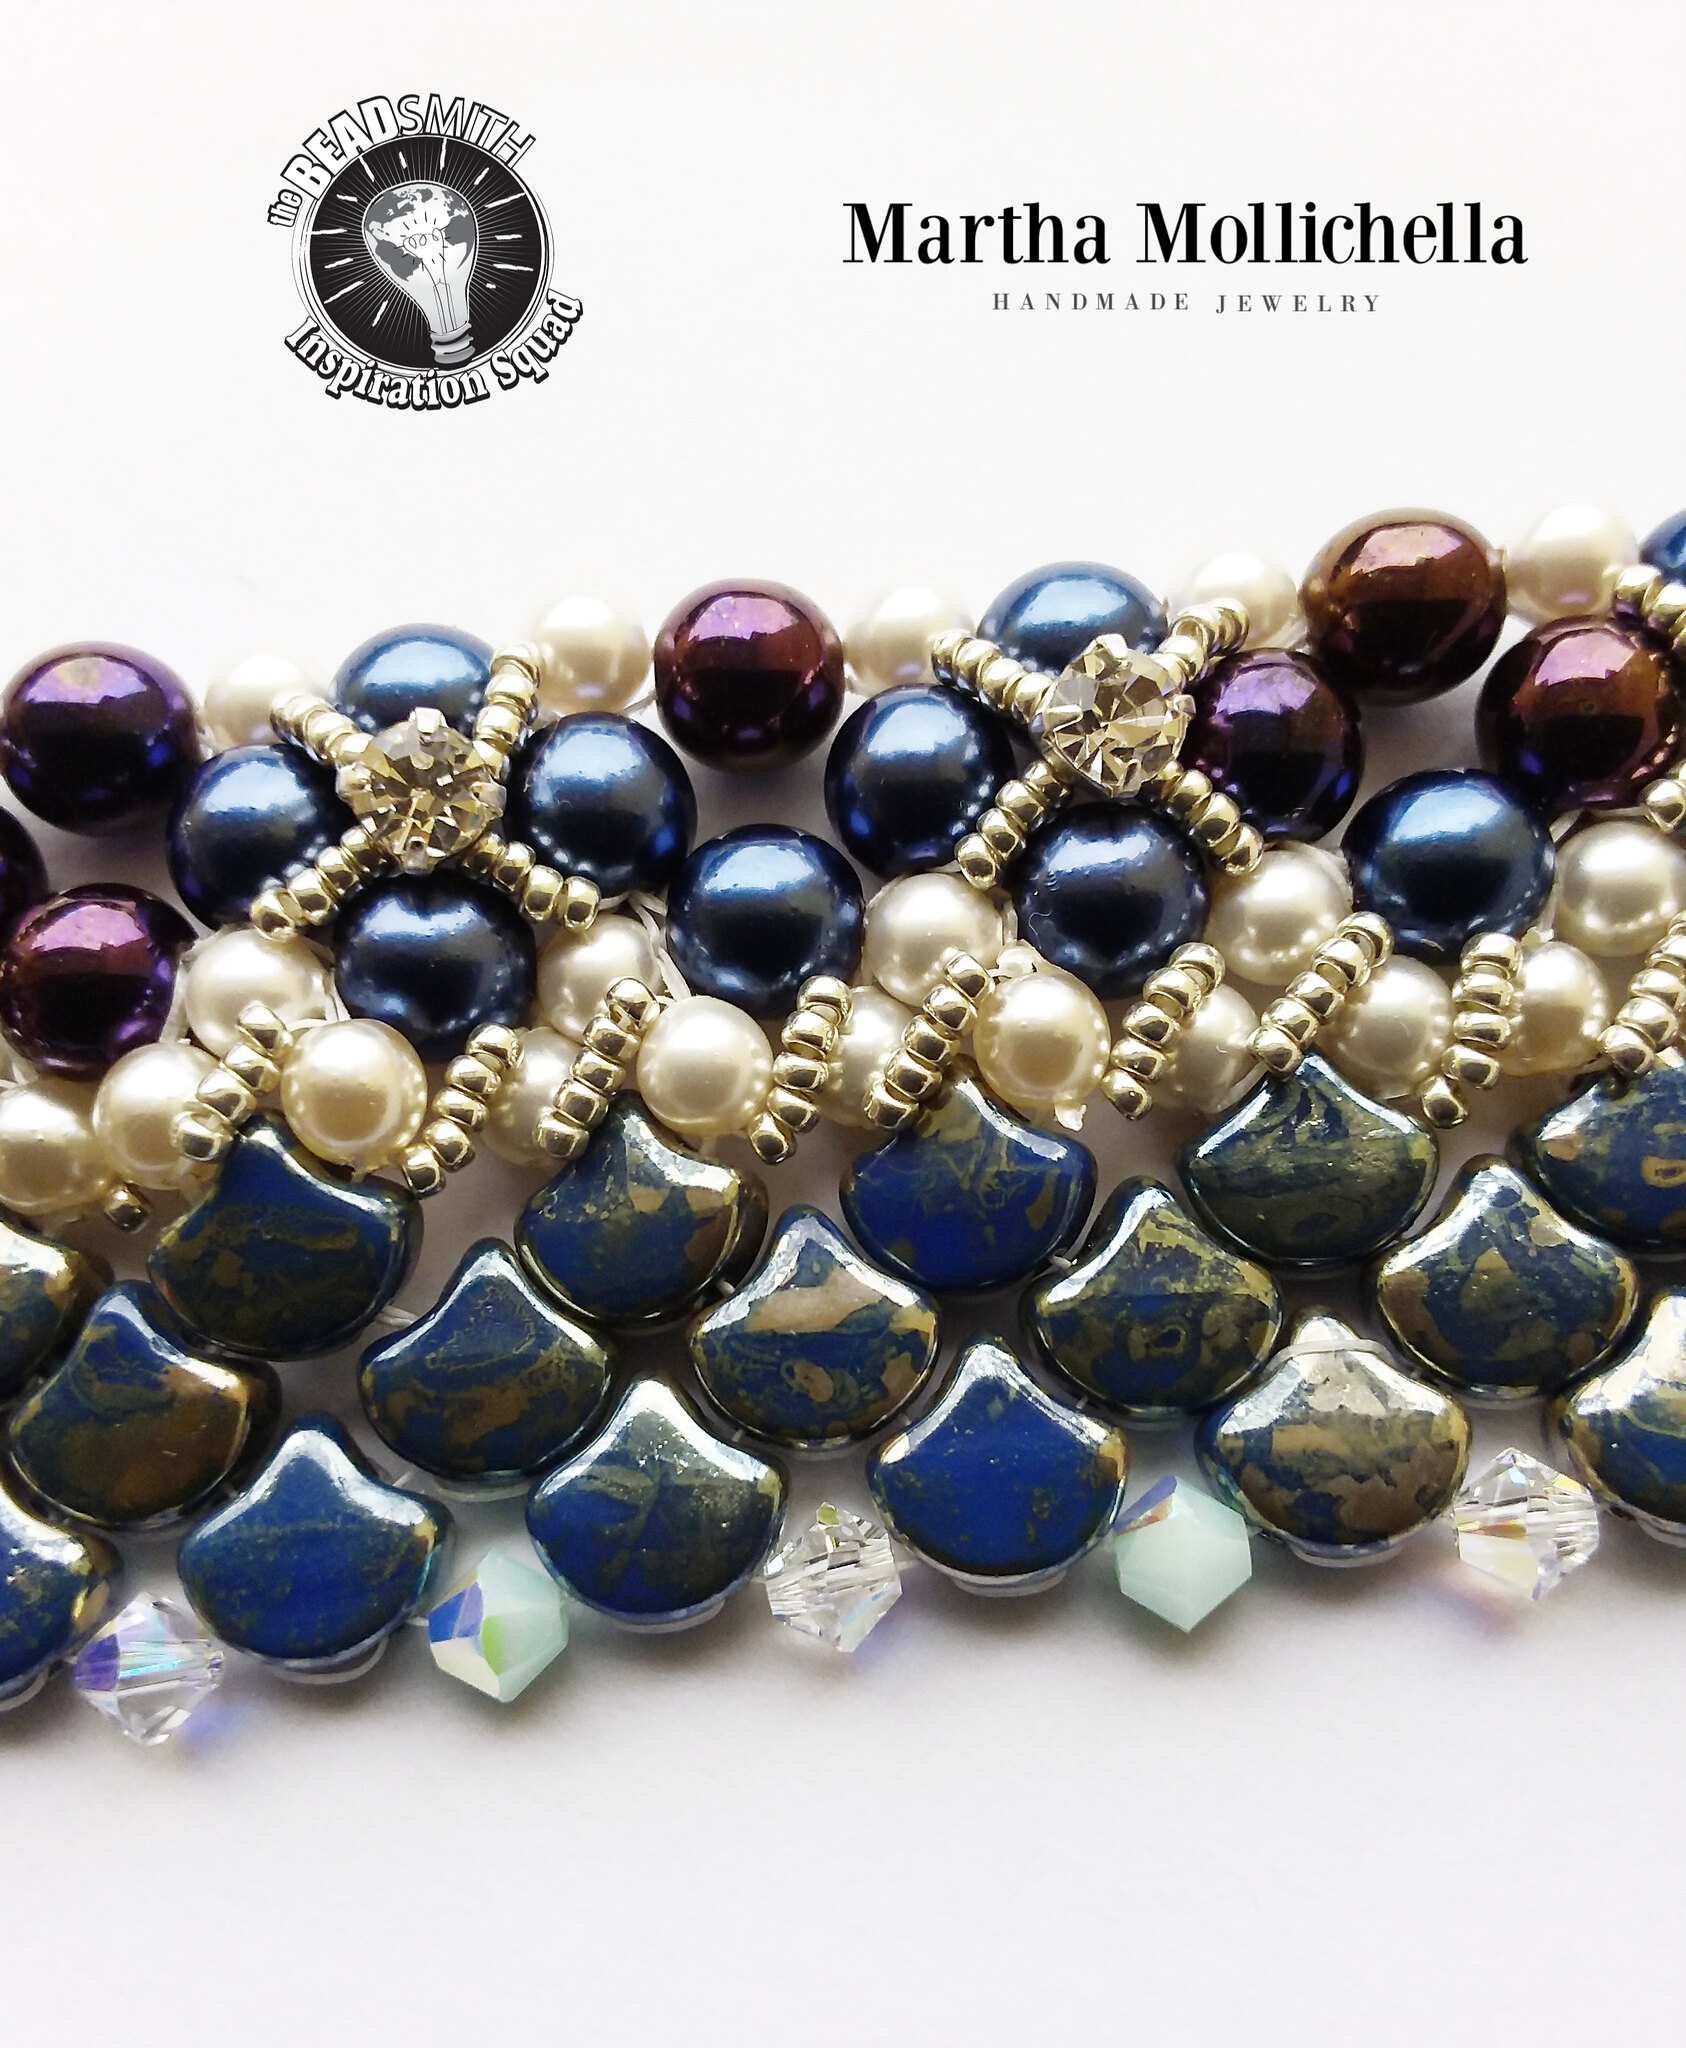 Martha Mollichella design jewelry specialist design made in Italy